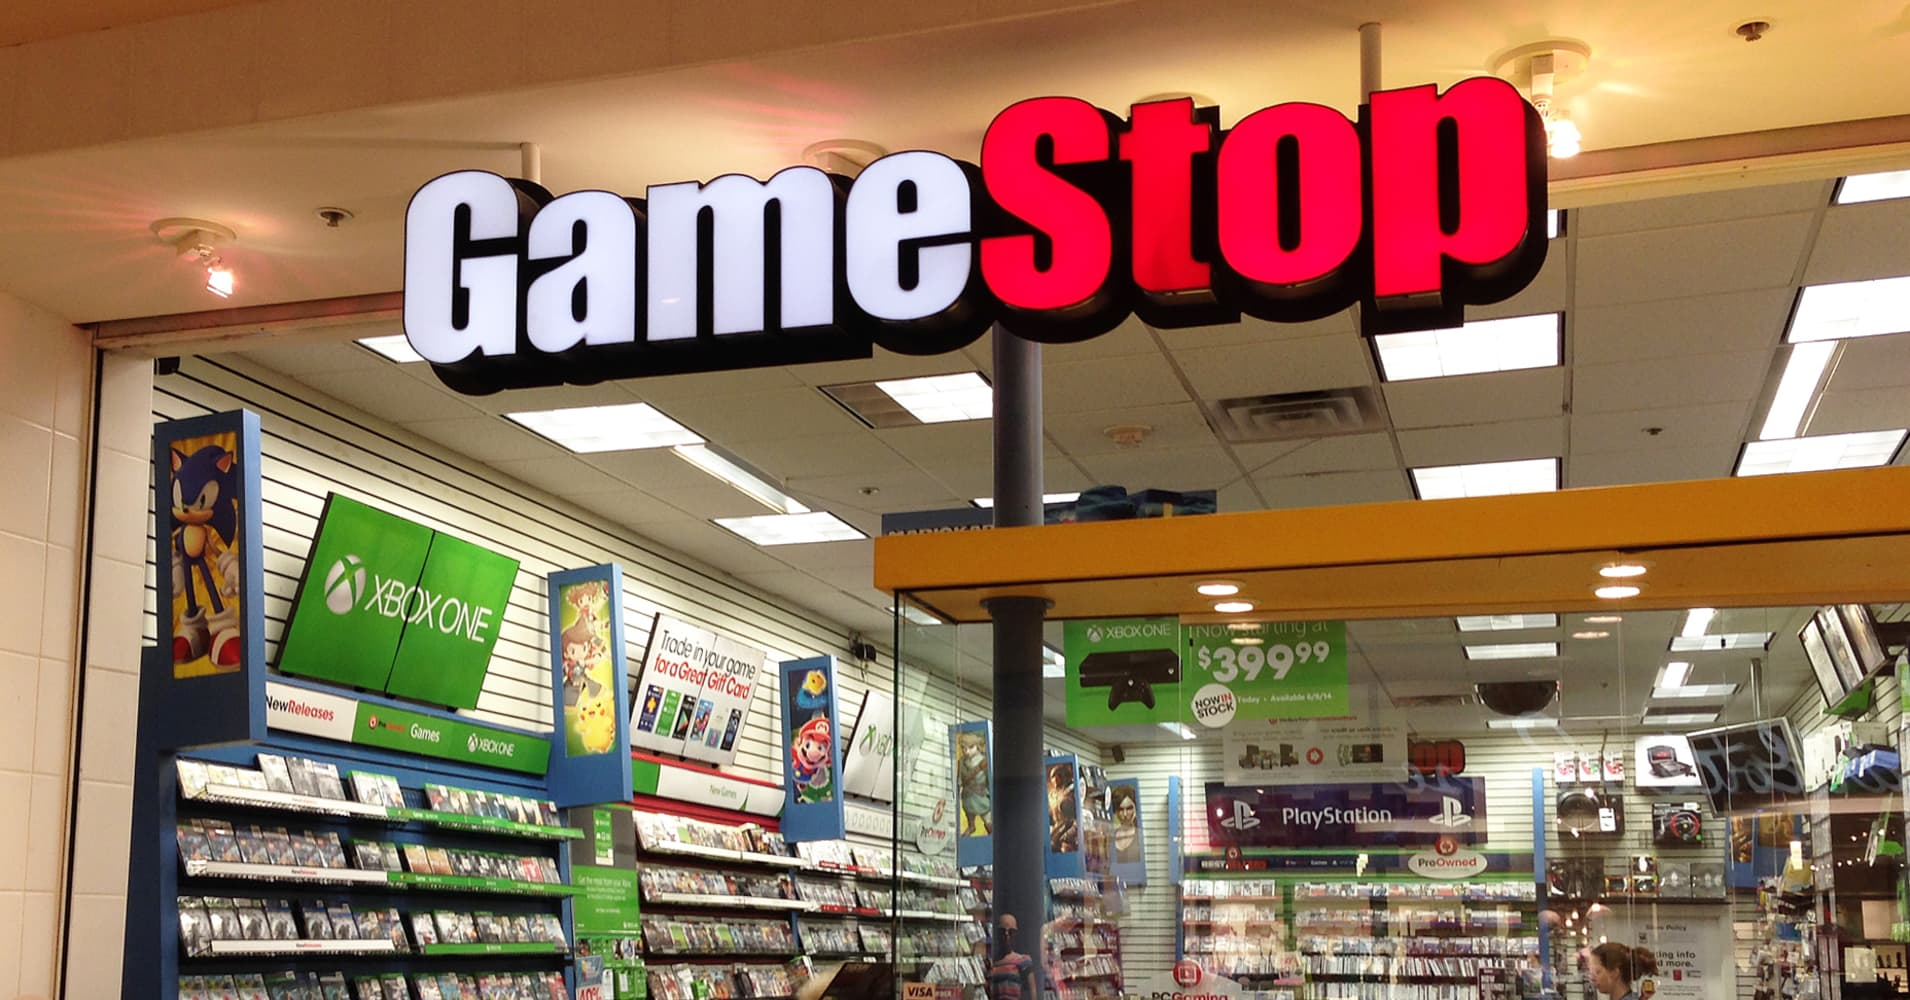 Shares of GameStop plummet on reports of lost sales